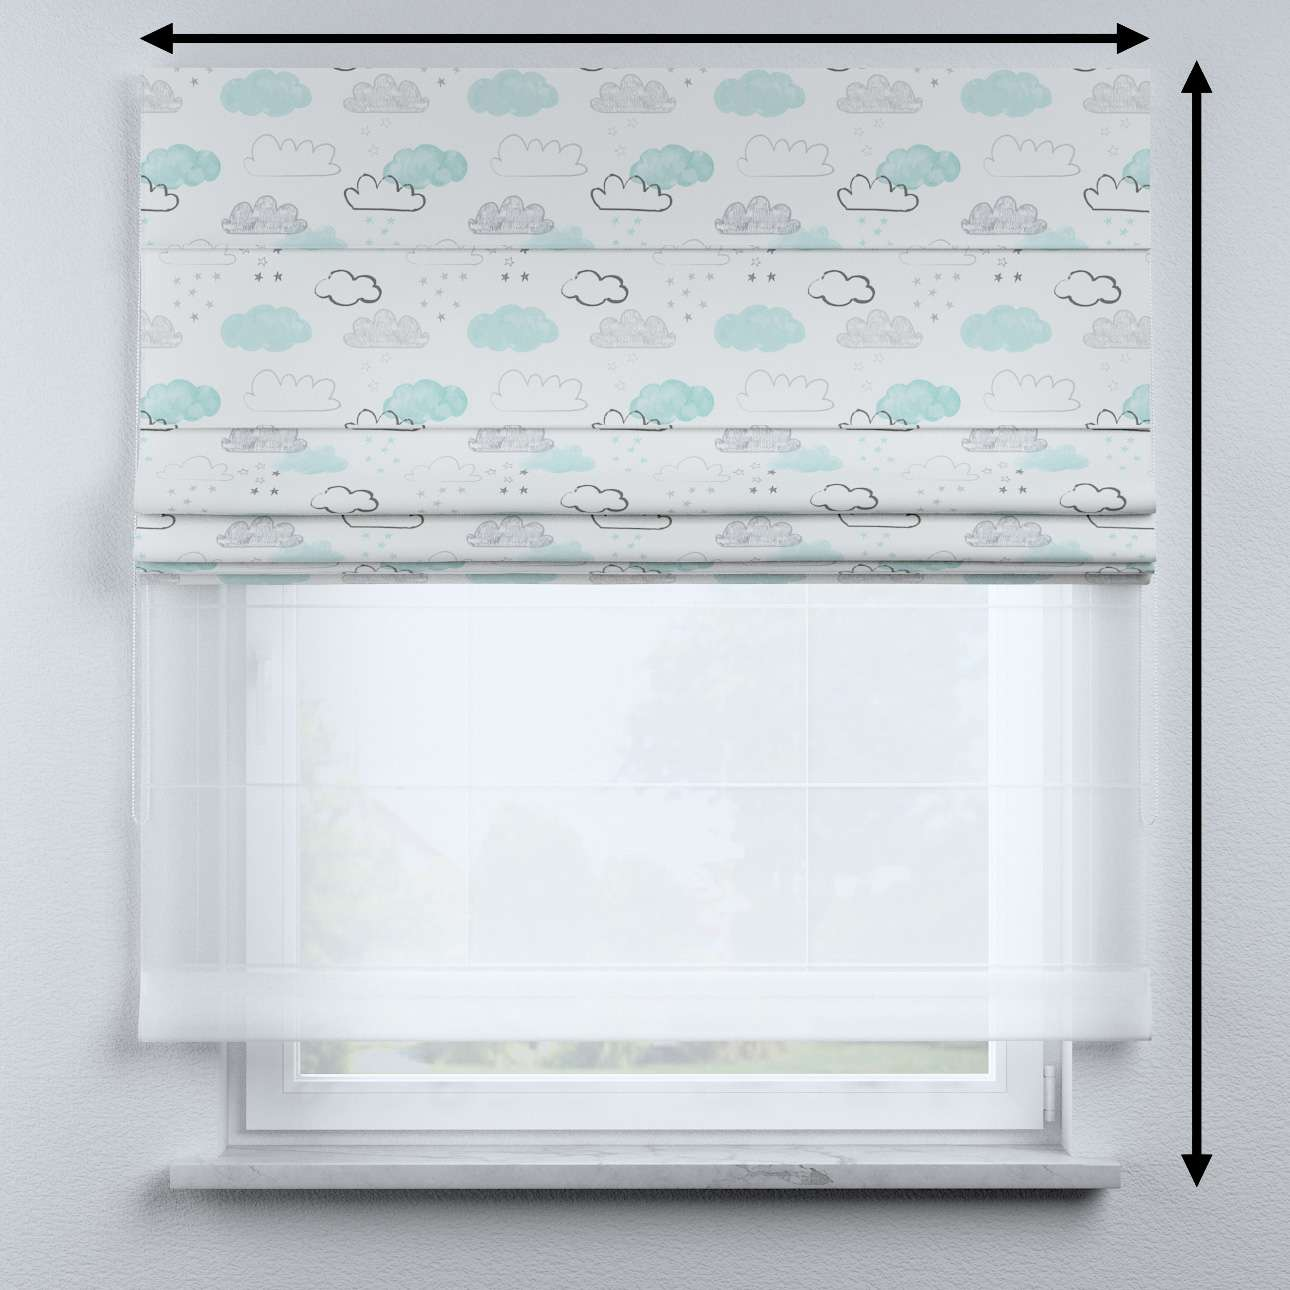 Voile and fabric roman blind (DUO II) in collection Magic Collection, fabric: 500-14